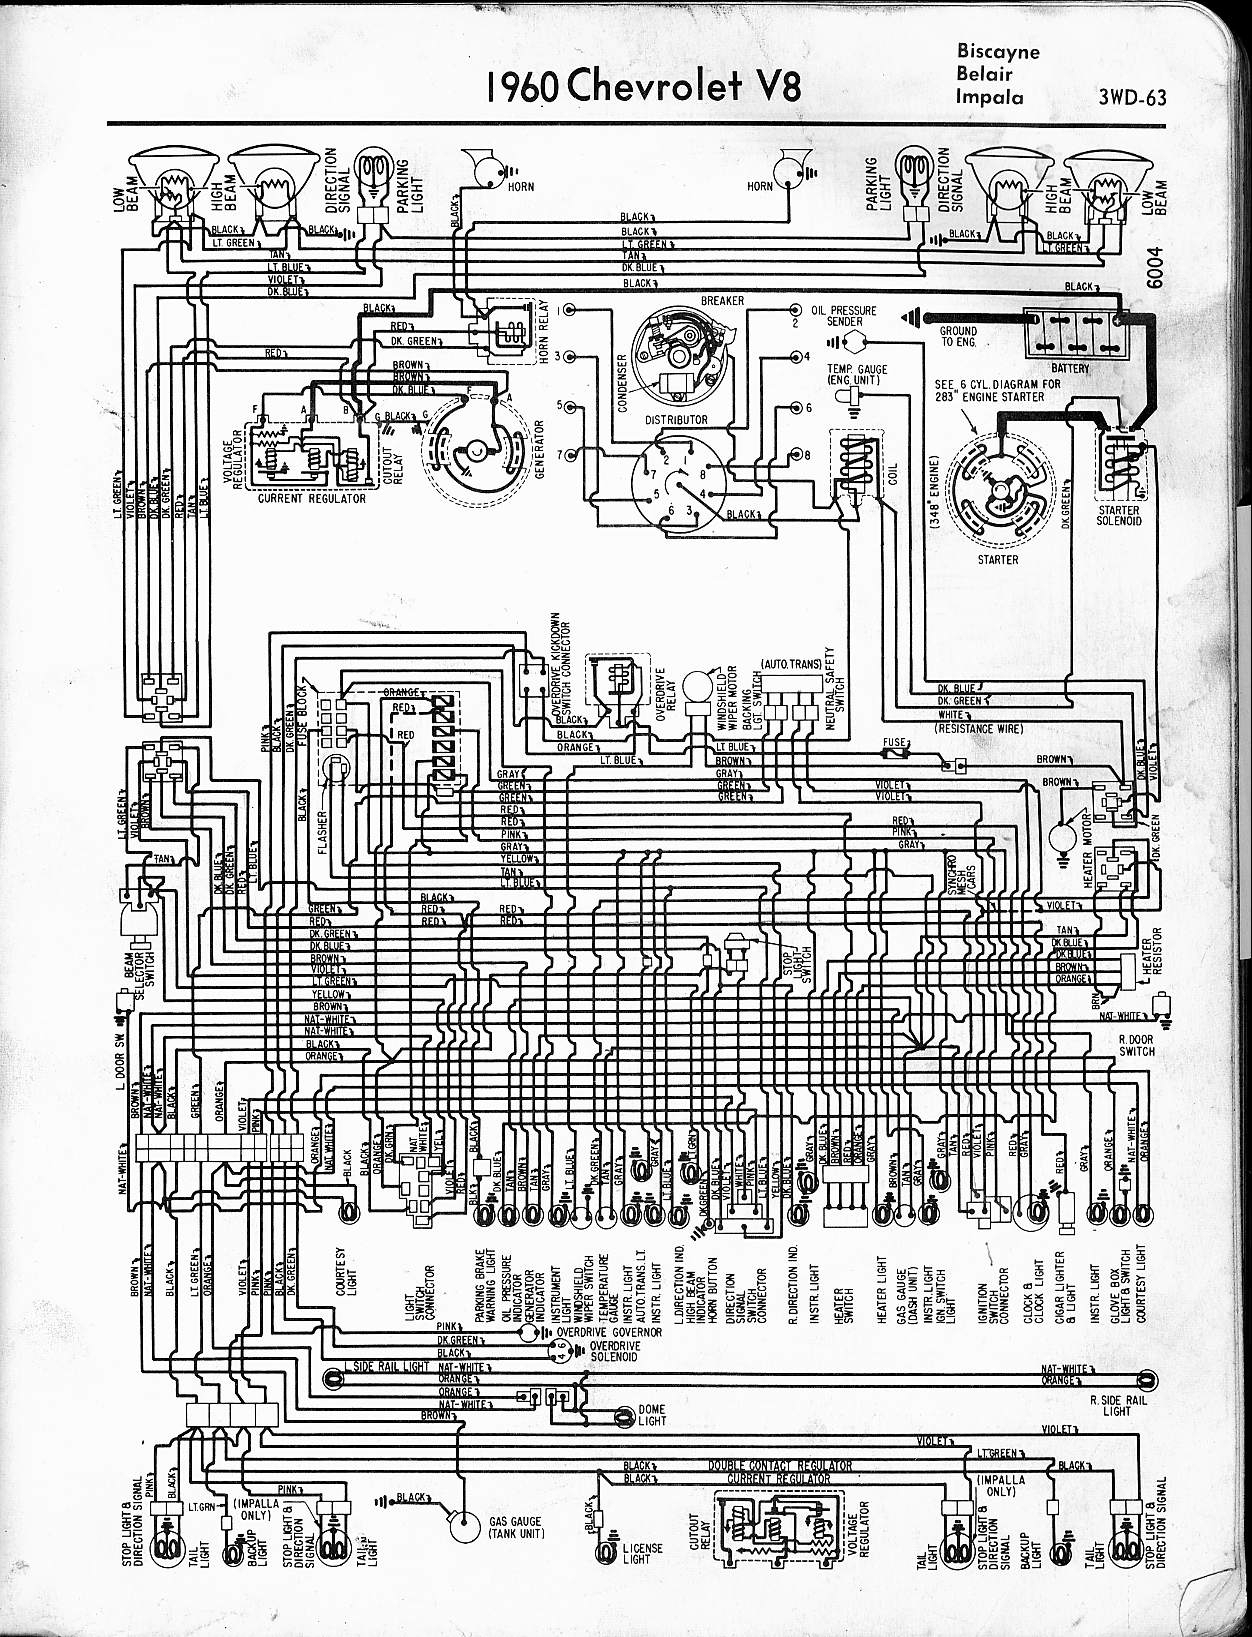 Diagram 1961 Chevy Impala Wiring Diagram Full Version Hd Quality Wiring Diagram Diagramwirings Primocircolospoleto It